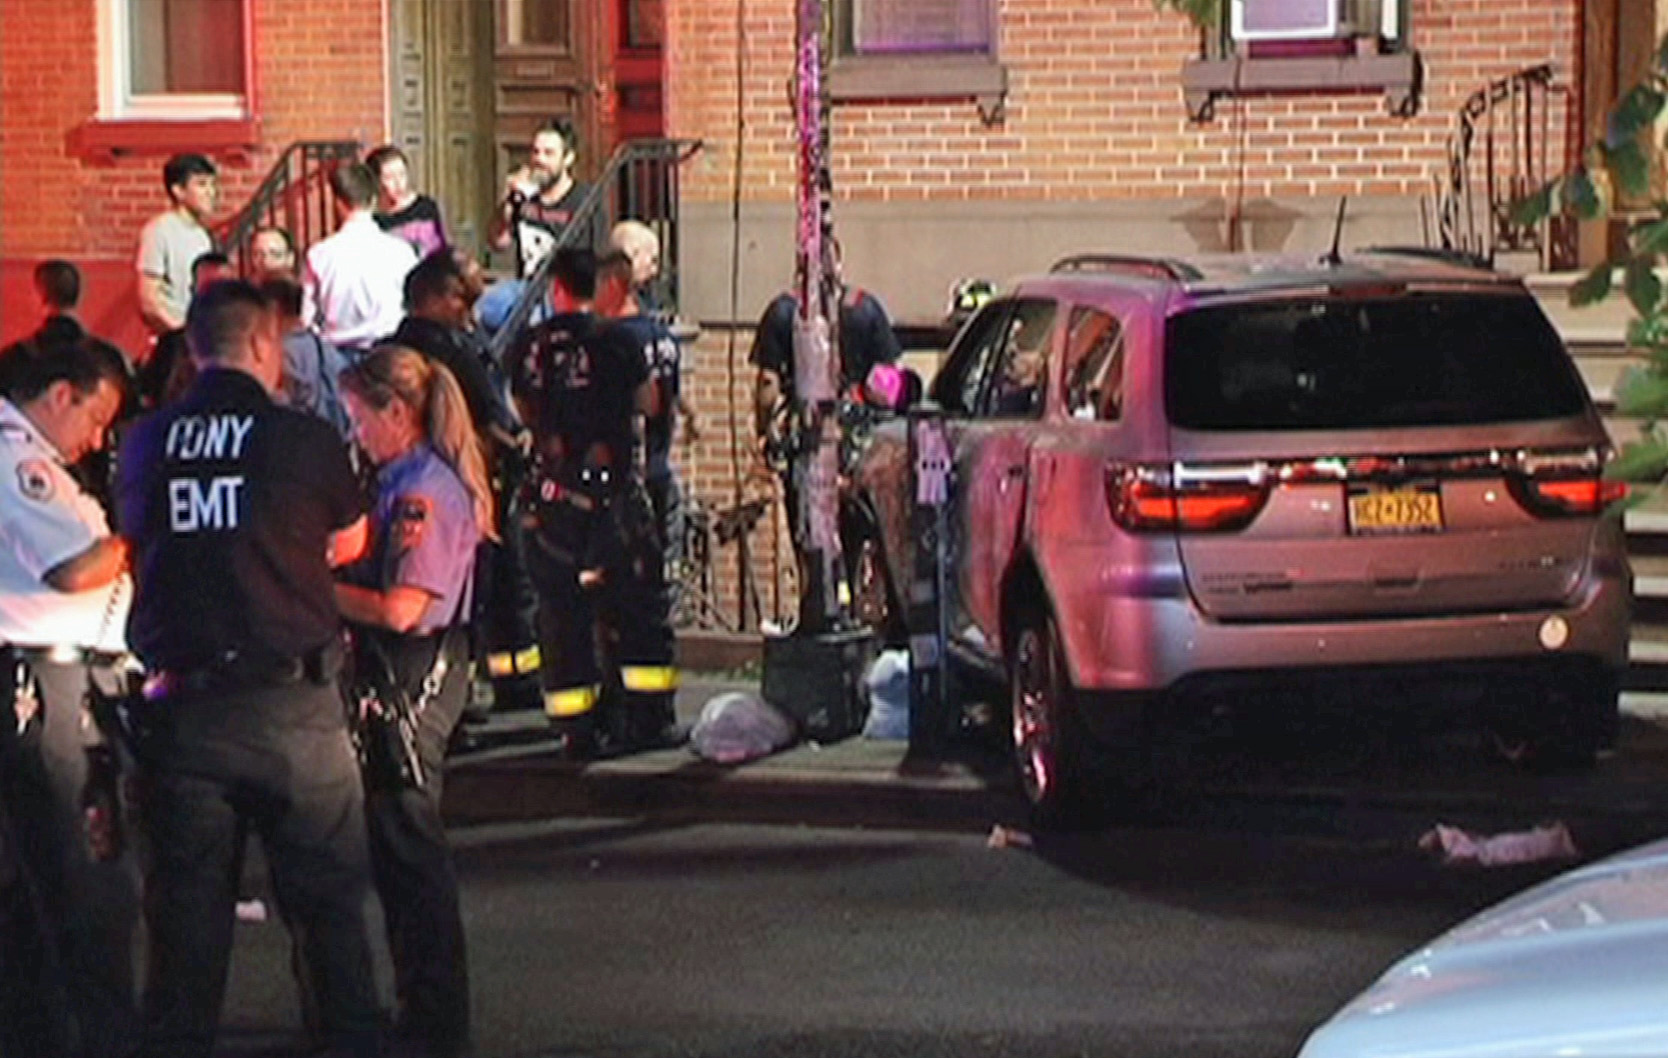 Four pedestrians were struck when the car, driven by an off-duty police officer, jumped a curb in Brooklyn.